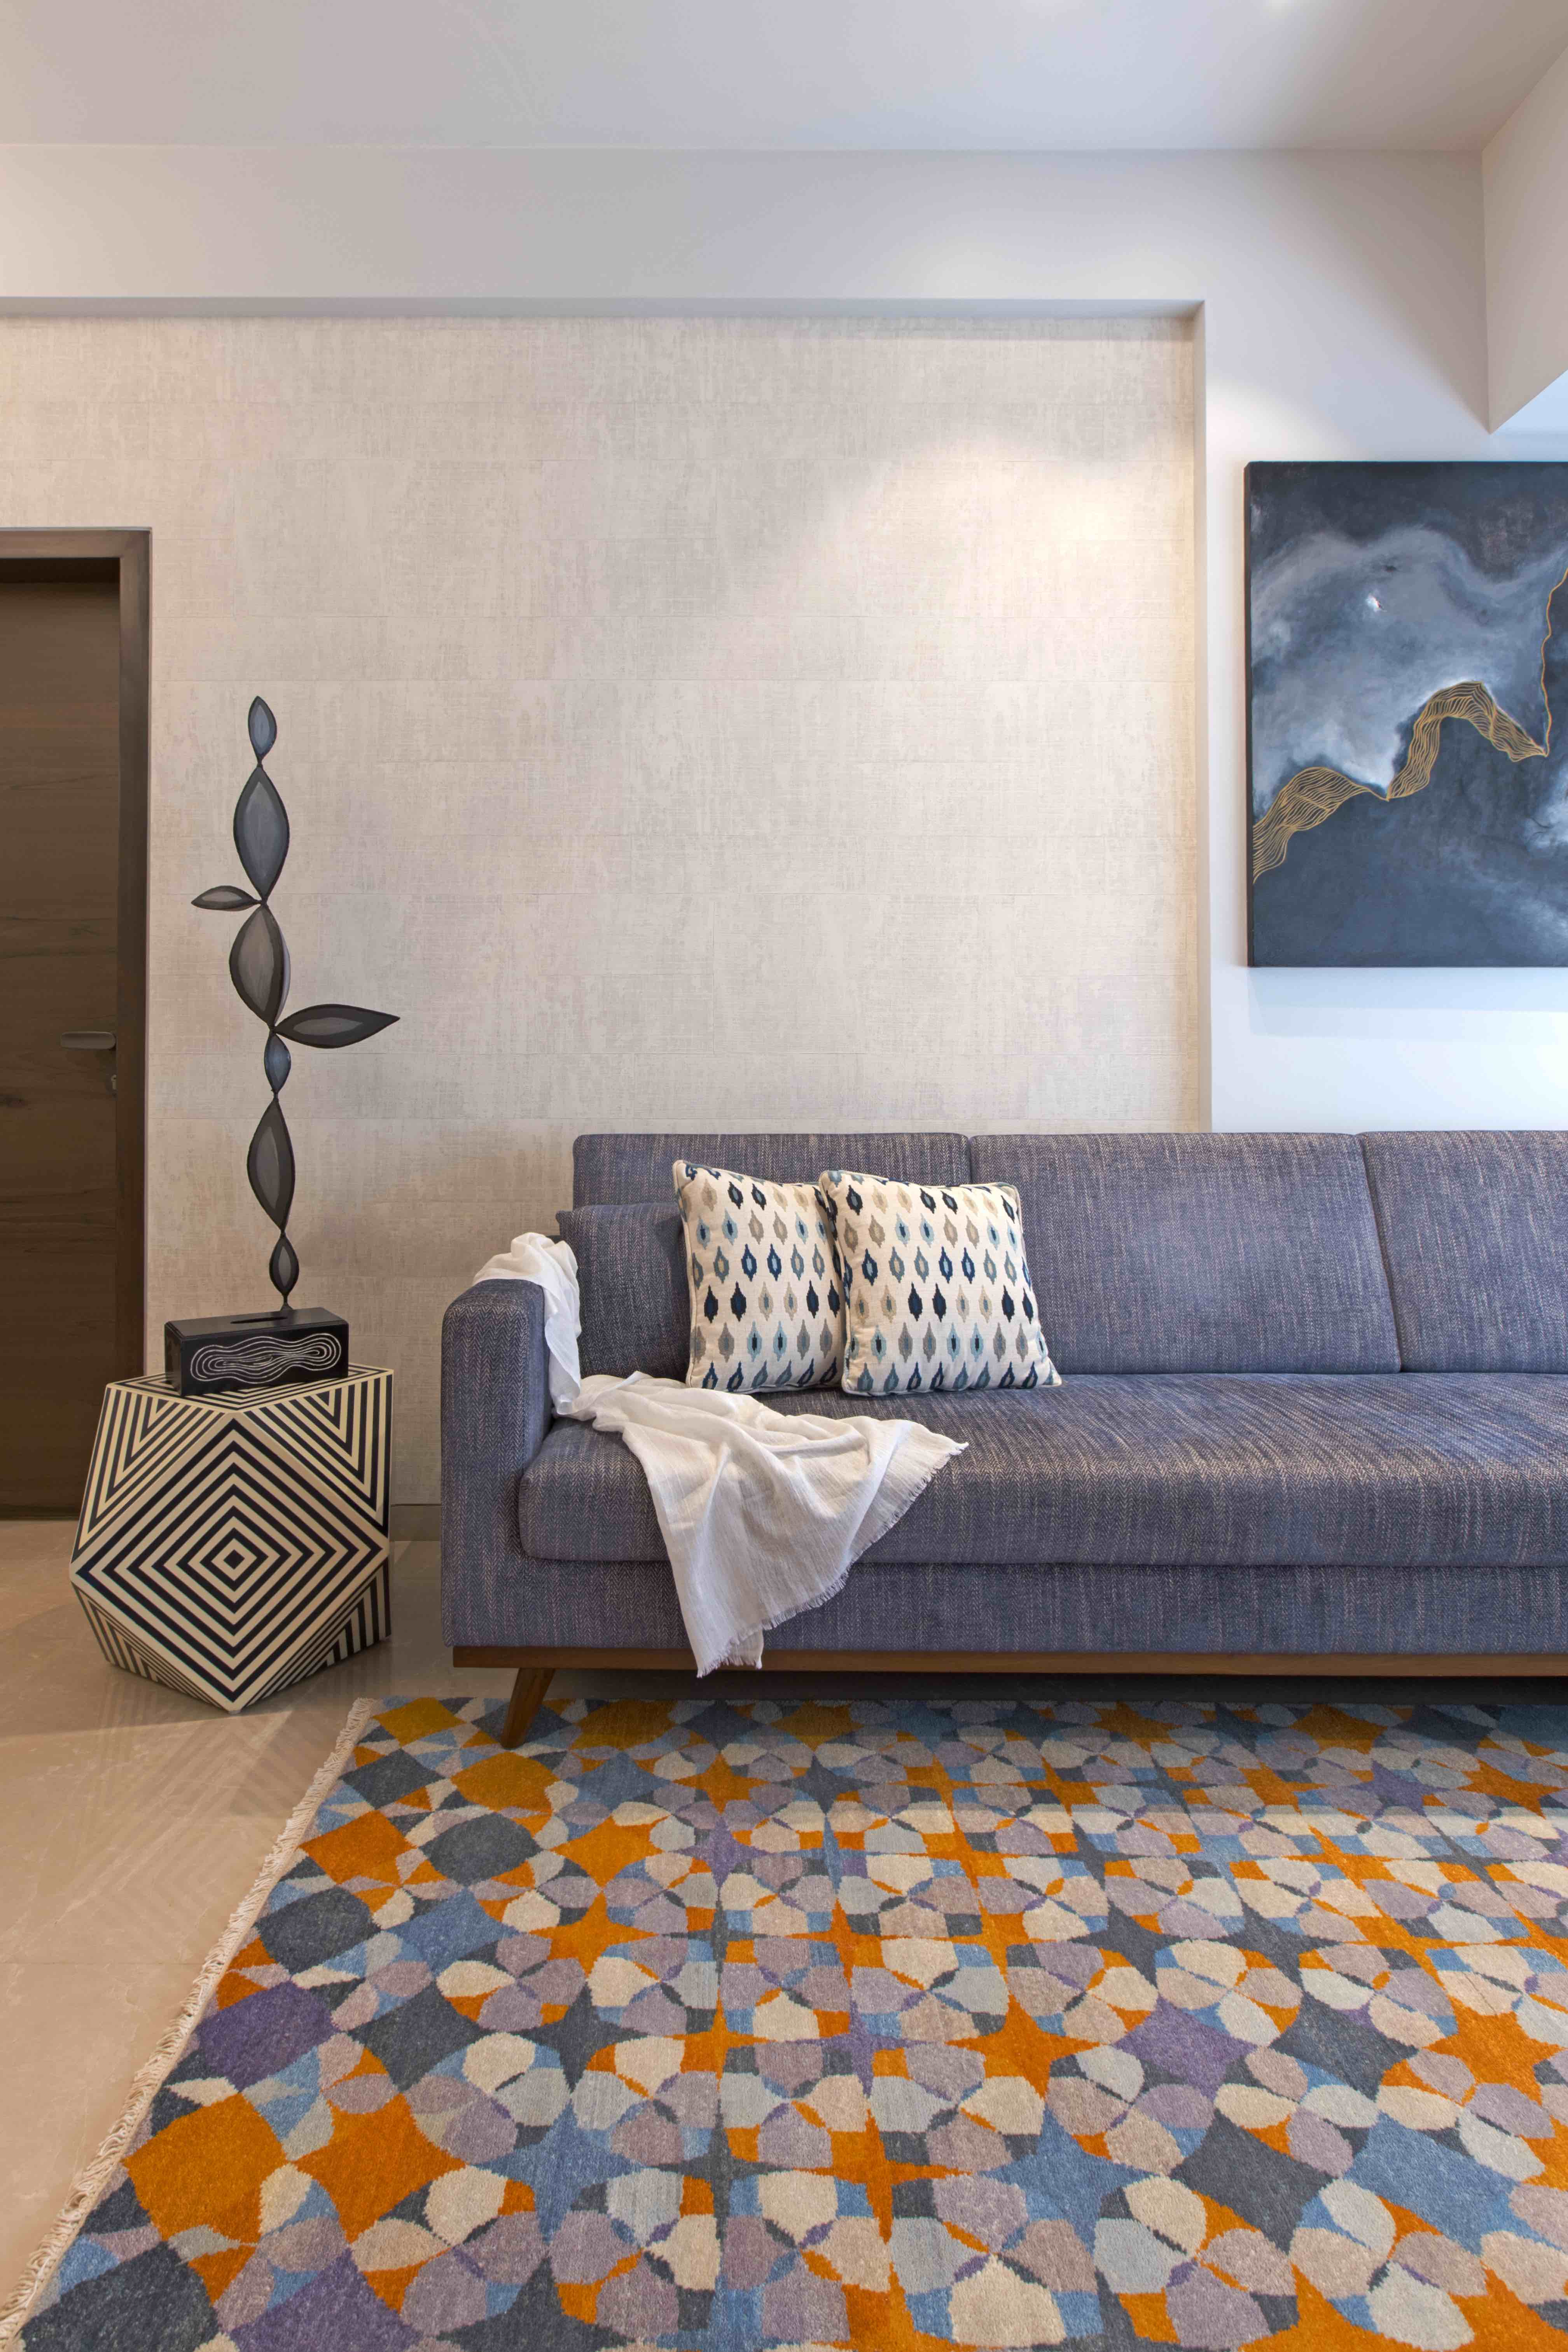 Bhandari Residence by Inscape Designers is an understated, tastefully curated apartment